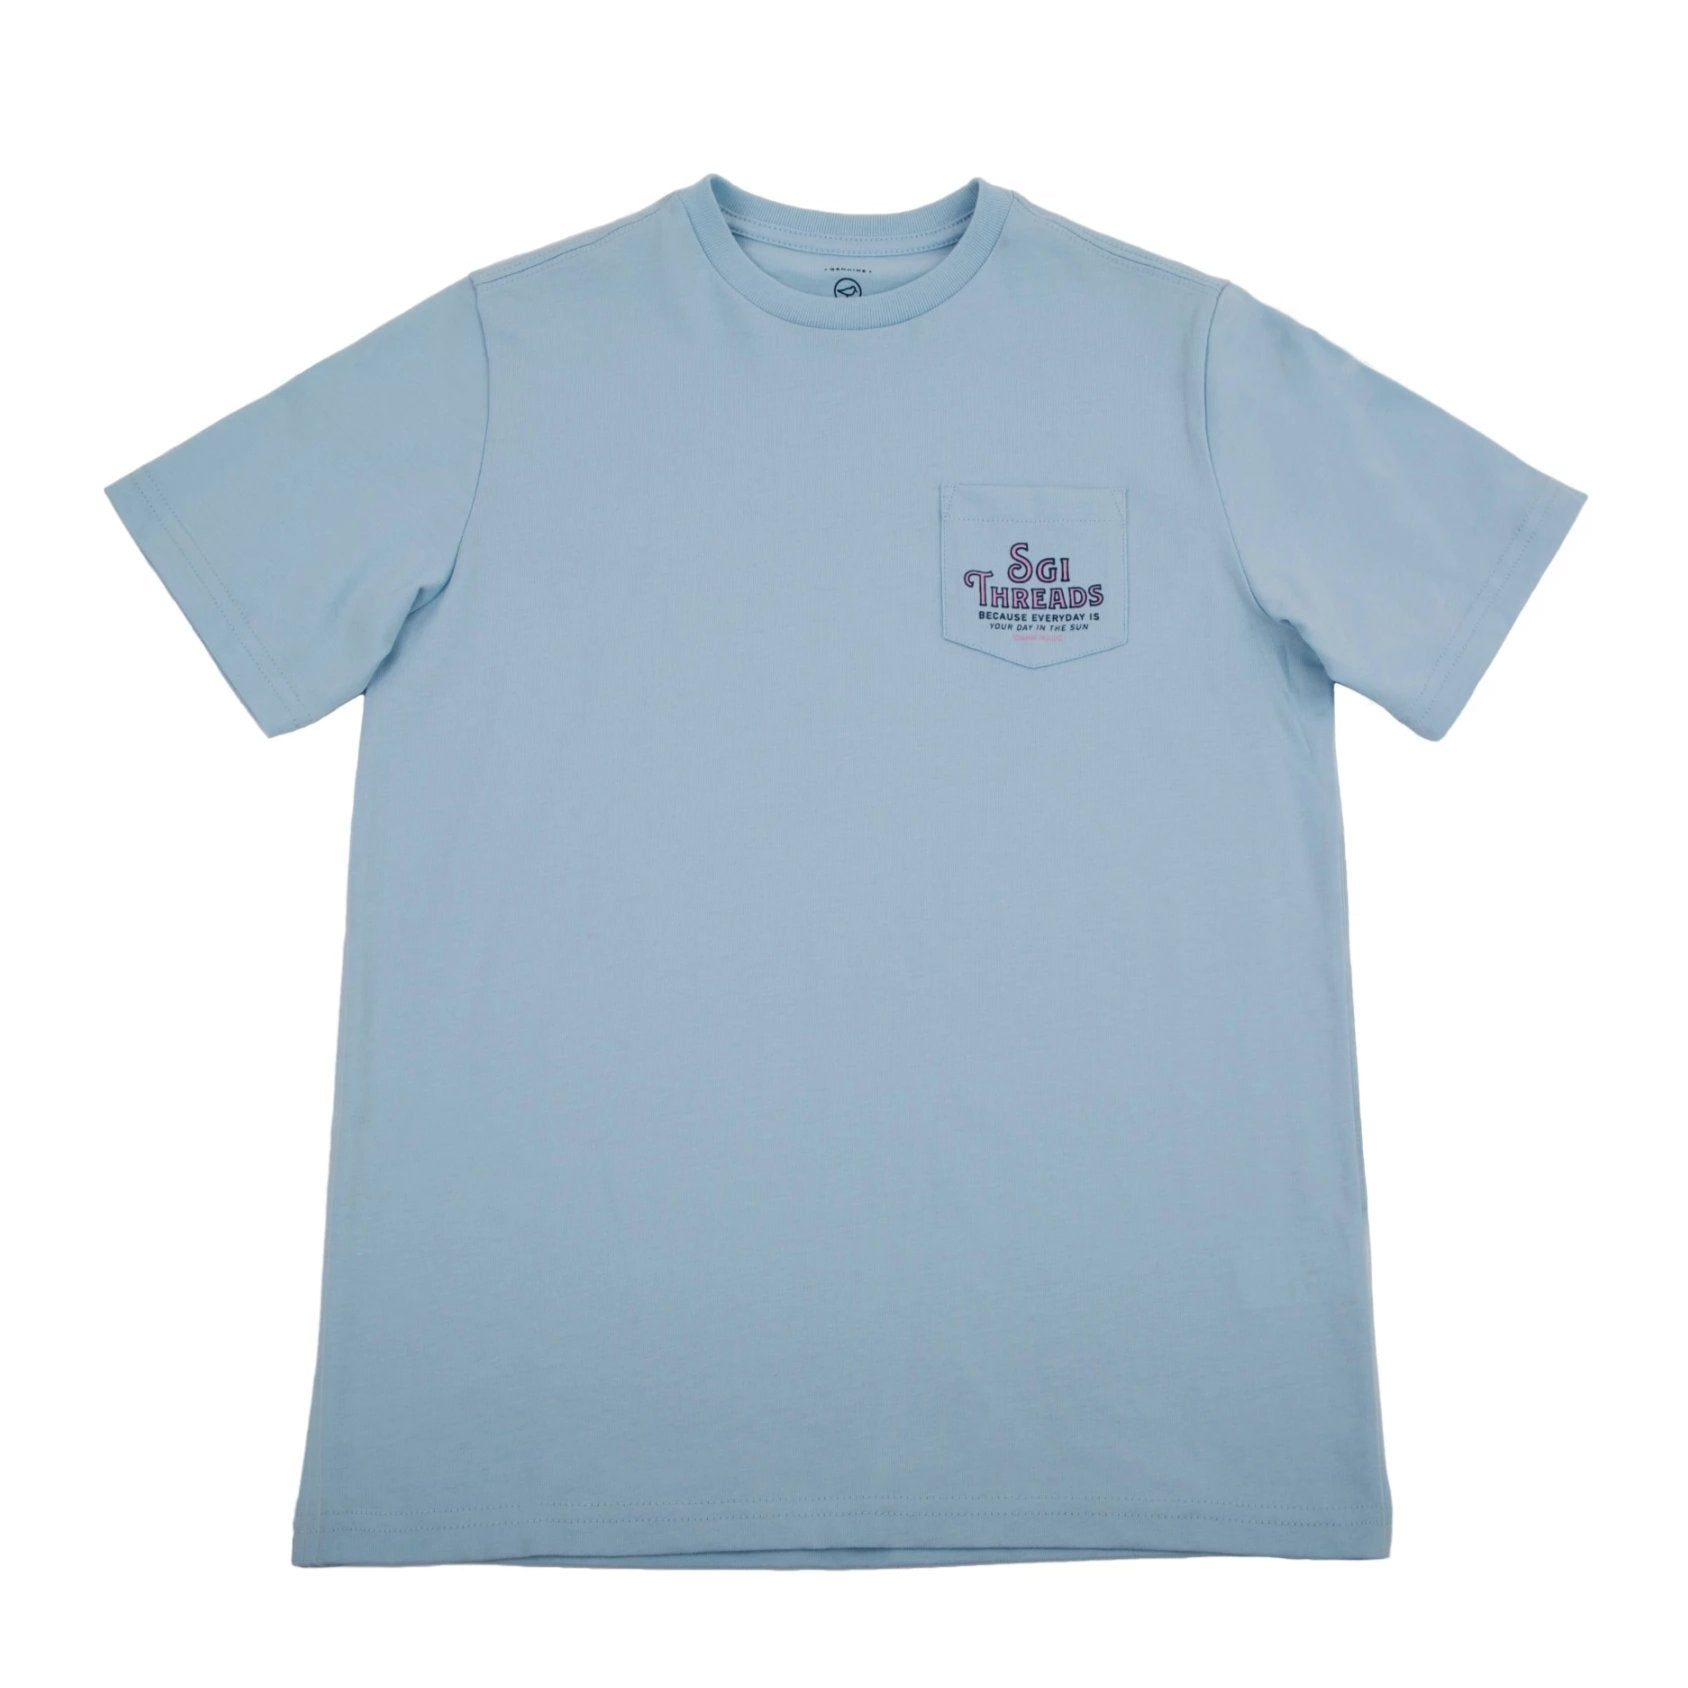 KIDS' ISLAND LIFE TEE LIGHT BLUE